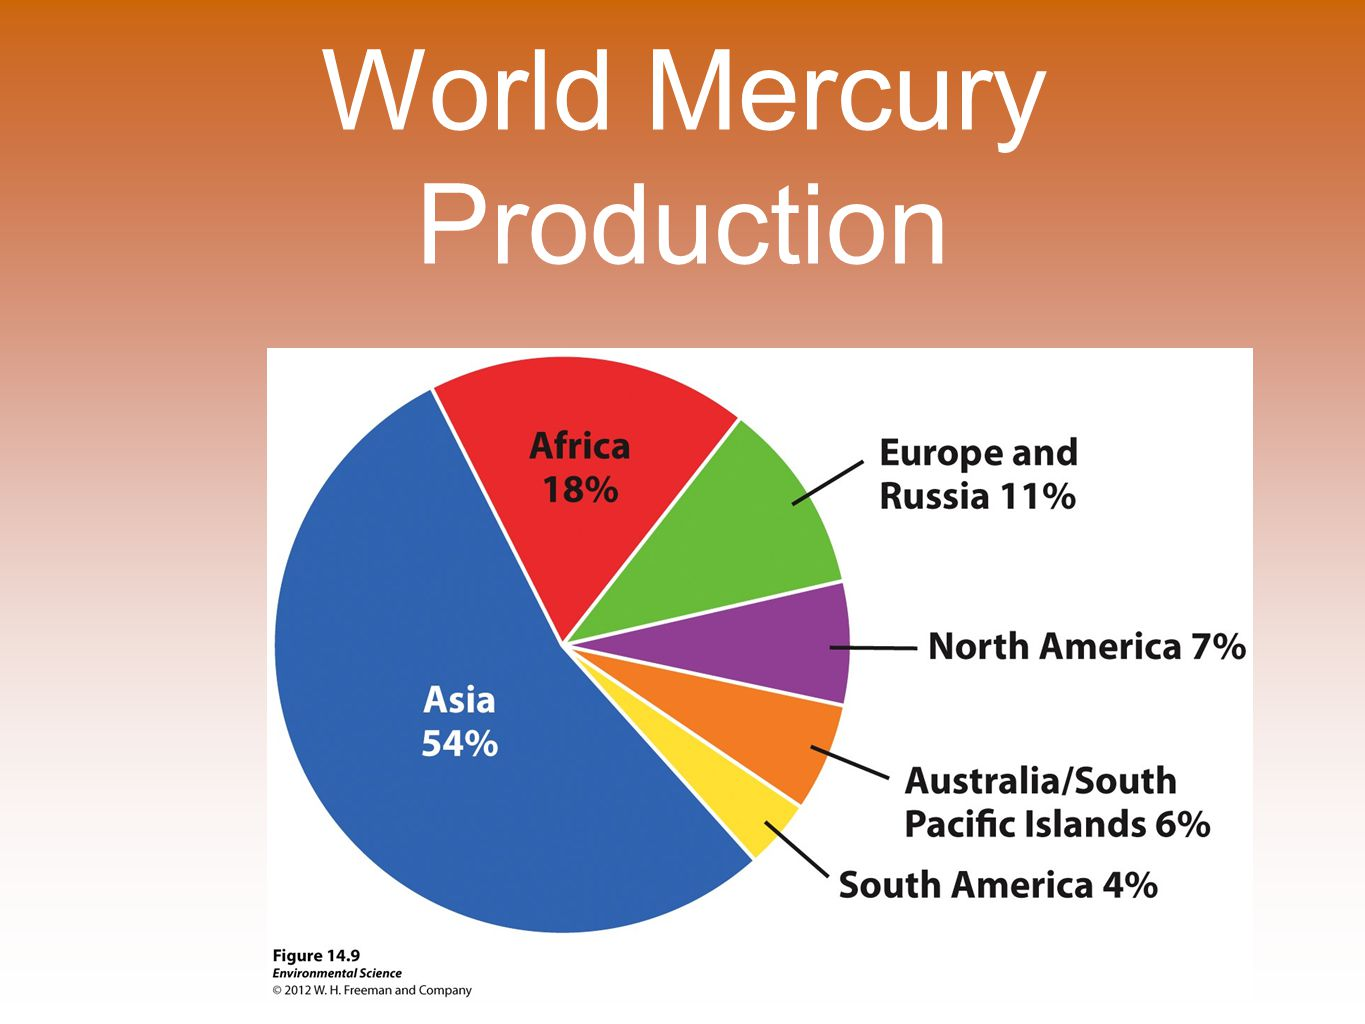 World Mercury Production